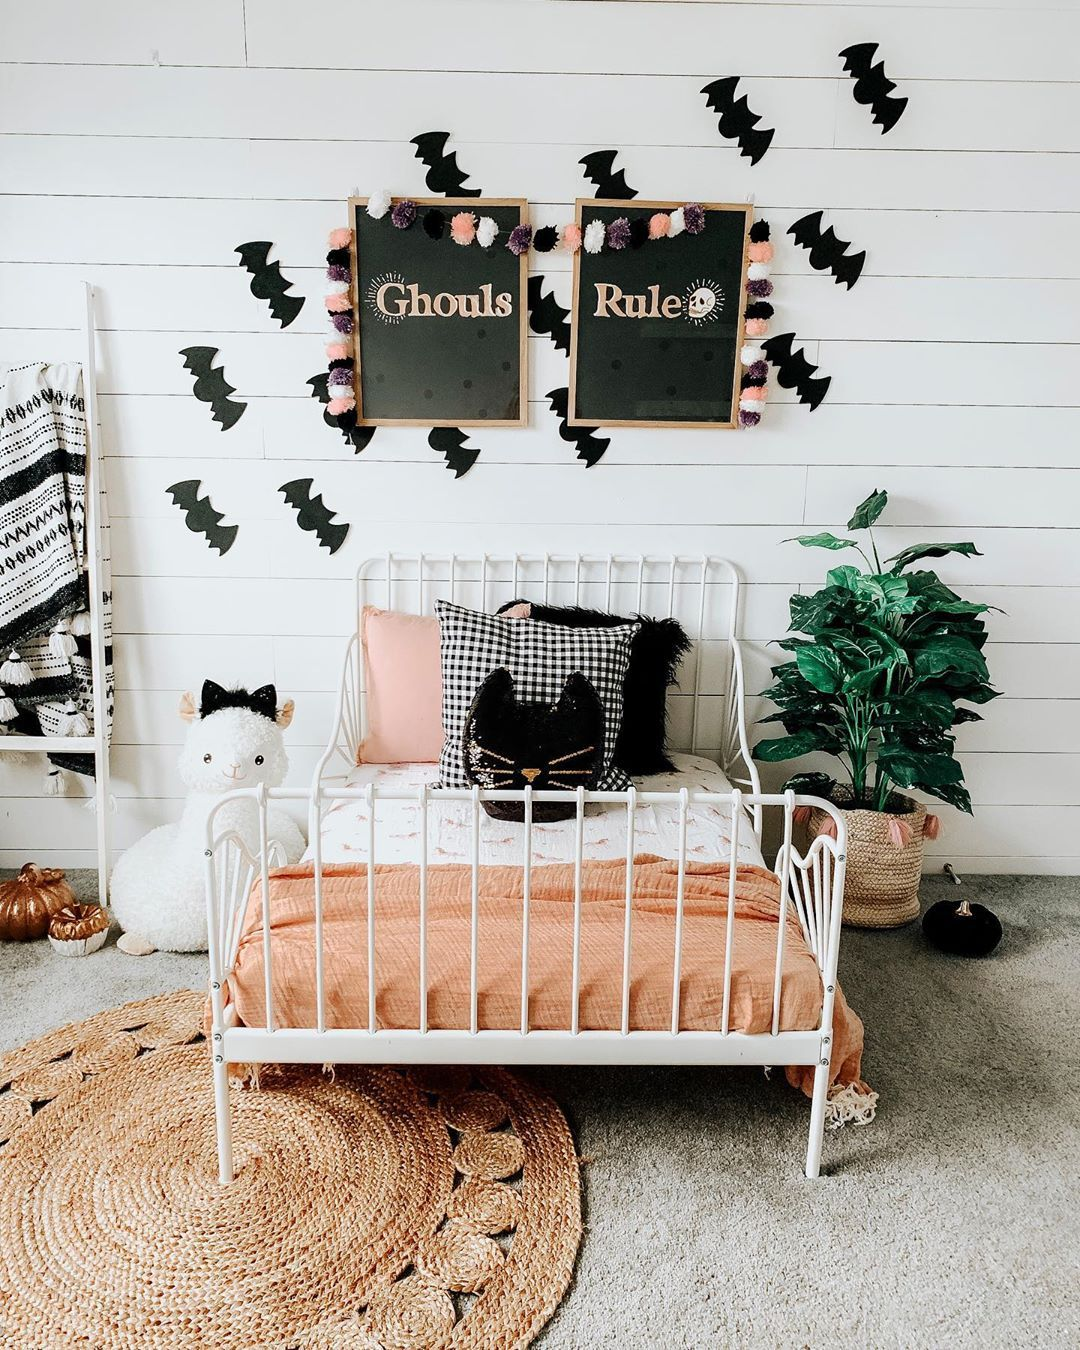 M A D S On Instagram It S Gettin Spooky Up In Here Spent My Whole Morning Afternoon Getting Halloween Room Decor Halloween Bedroom Halloween Home Decor